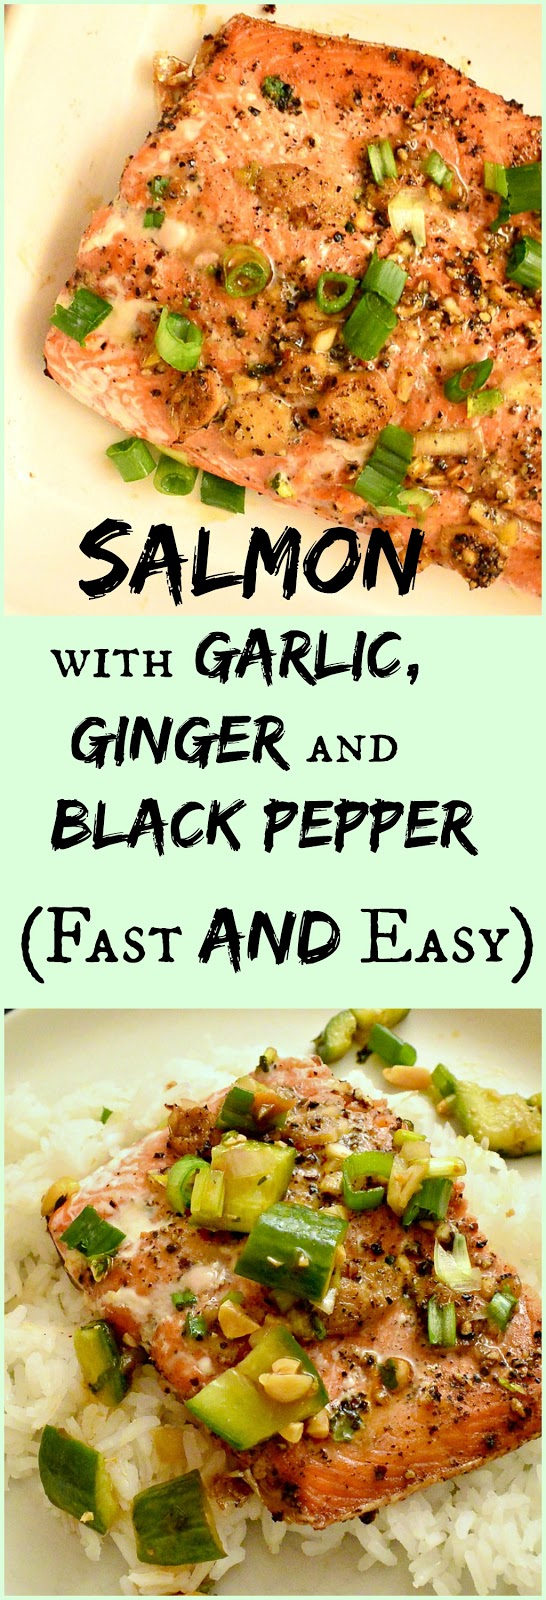 Salmon with Garlic, Ginger and Black Pepper (Fast and Easy